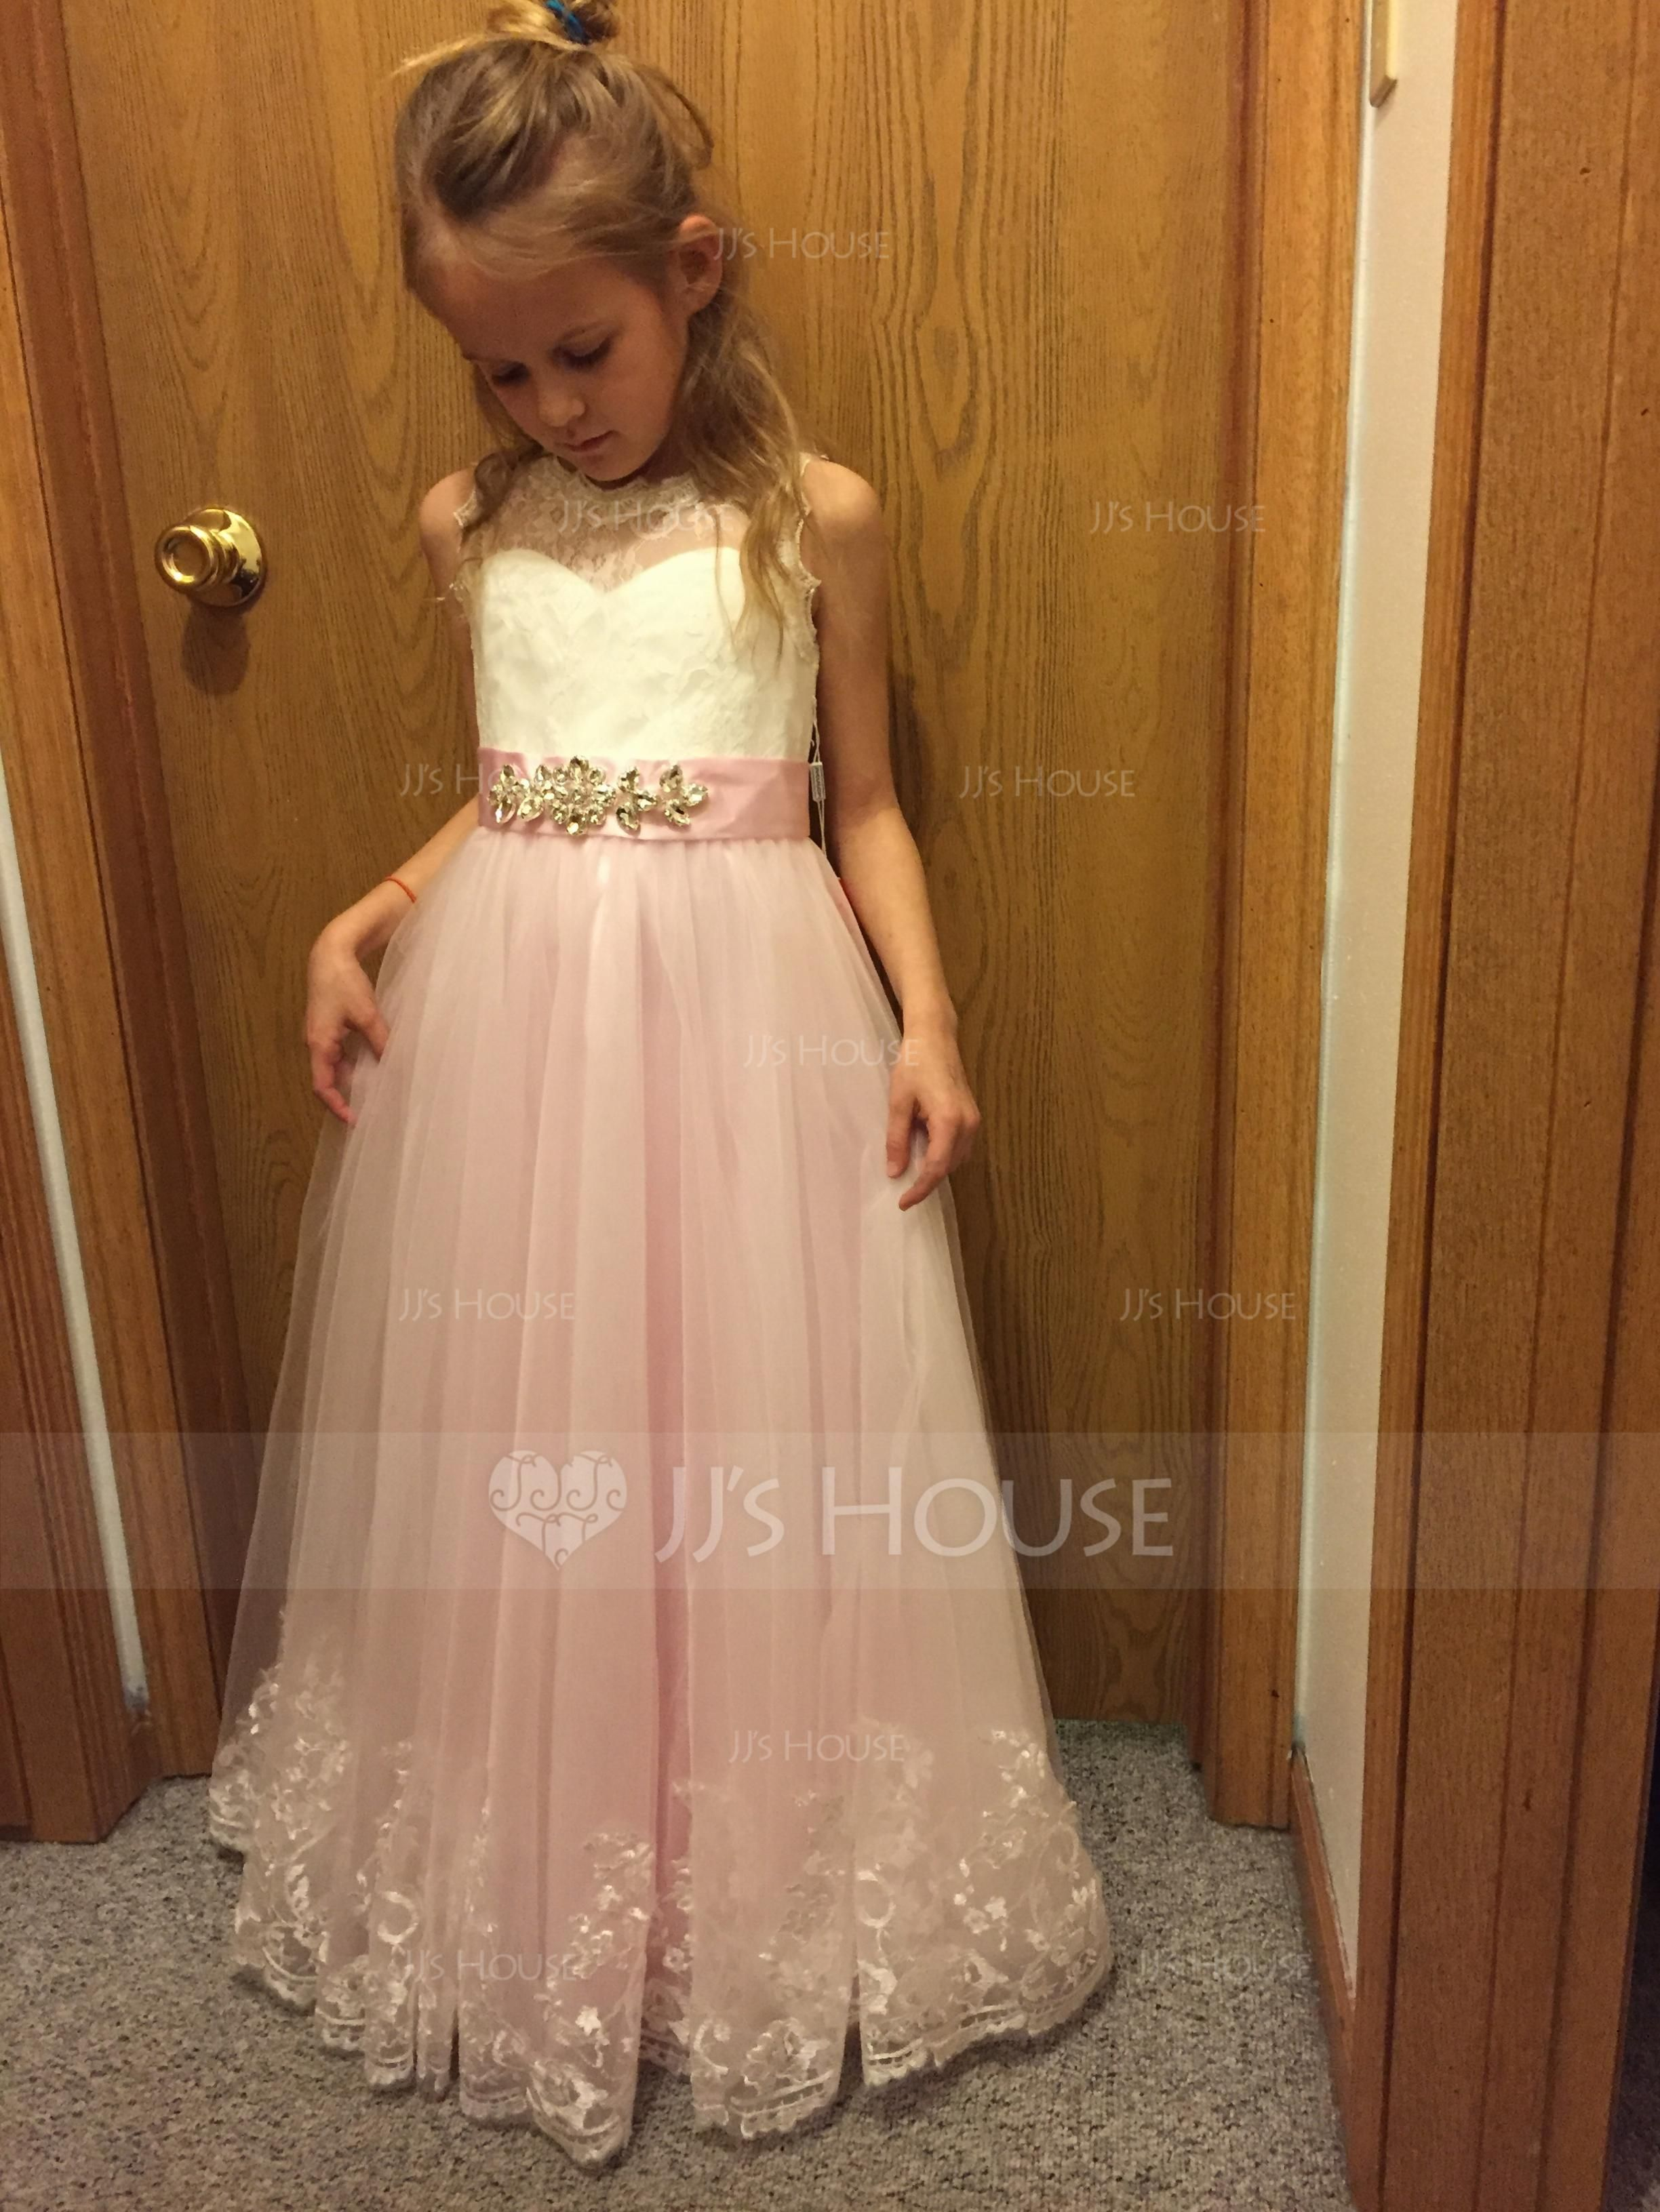 6a1d322c1 m.jjshouse.com reviews Ball-Gown-Floor-Length-Flower-Girl-Dress -Satin-Tulle-Lace-Sleeveless-Scoop-Neck-With-Rhinestone-010143277-cid10-p143277